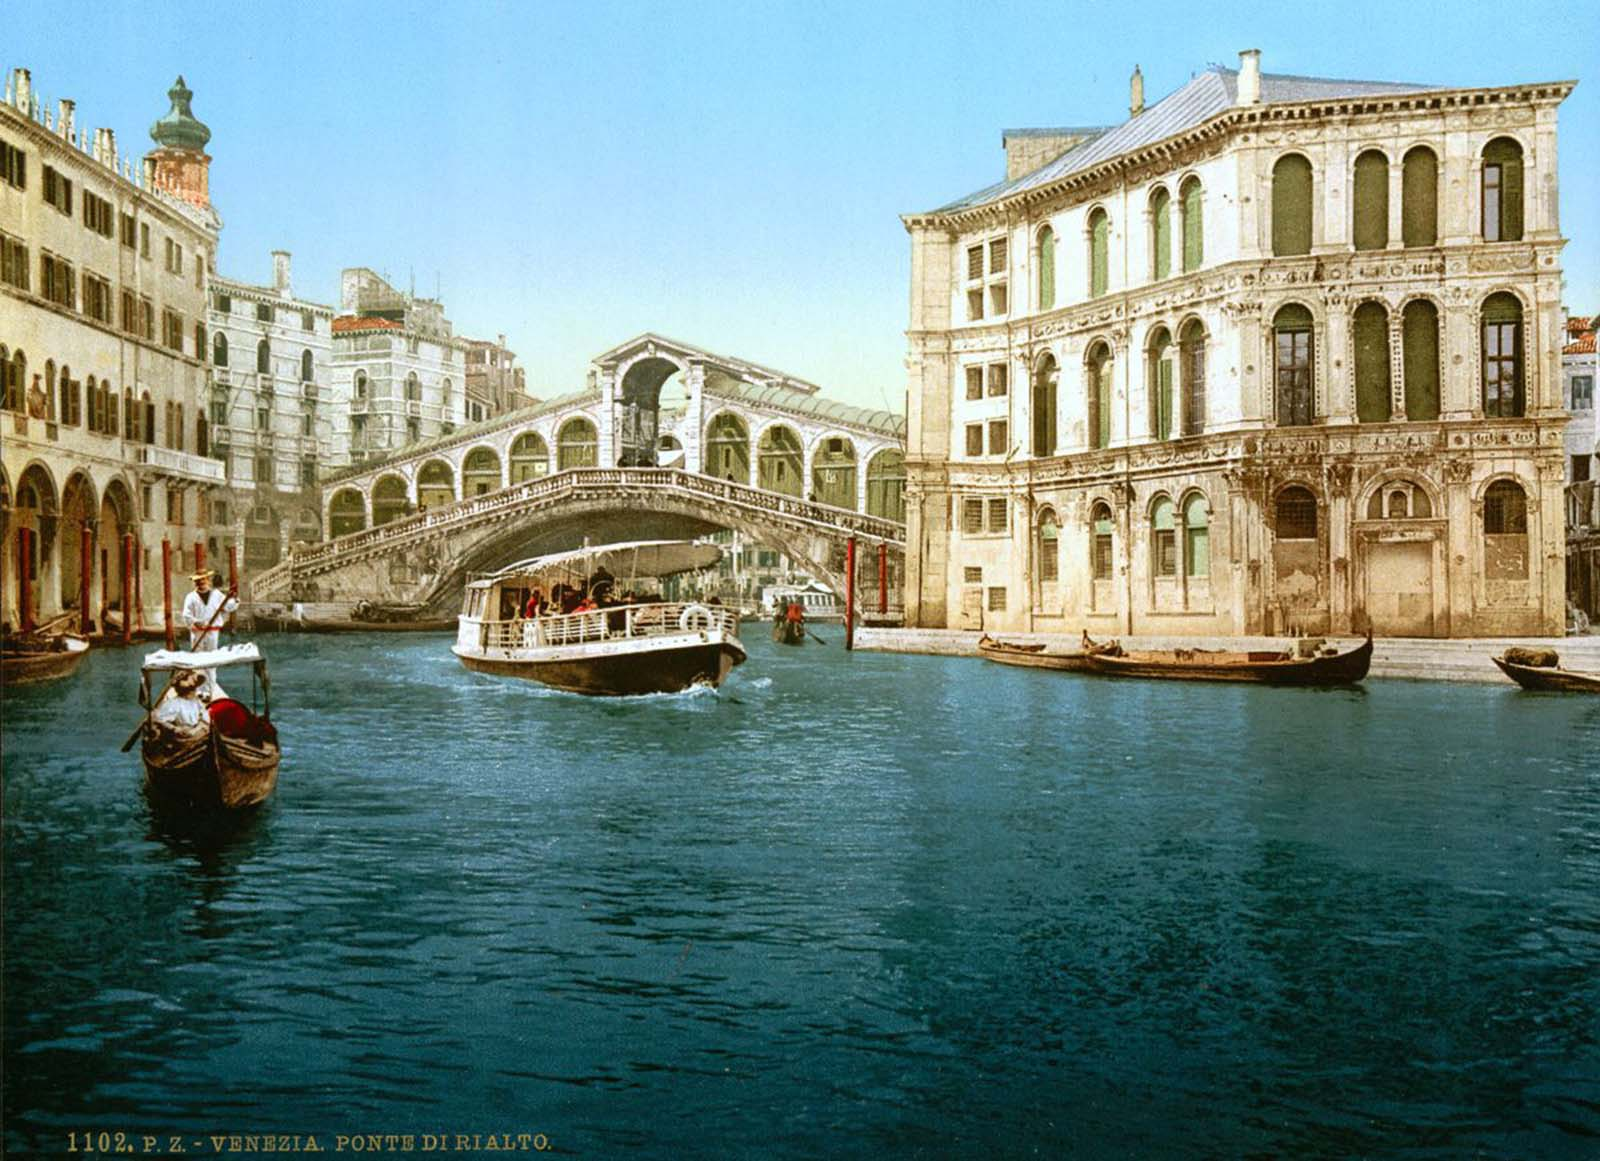 The Grand Canal and the Rialto Bridge.